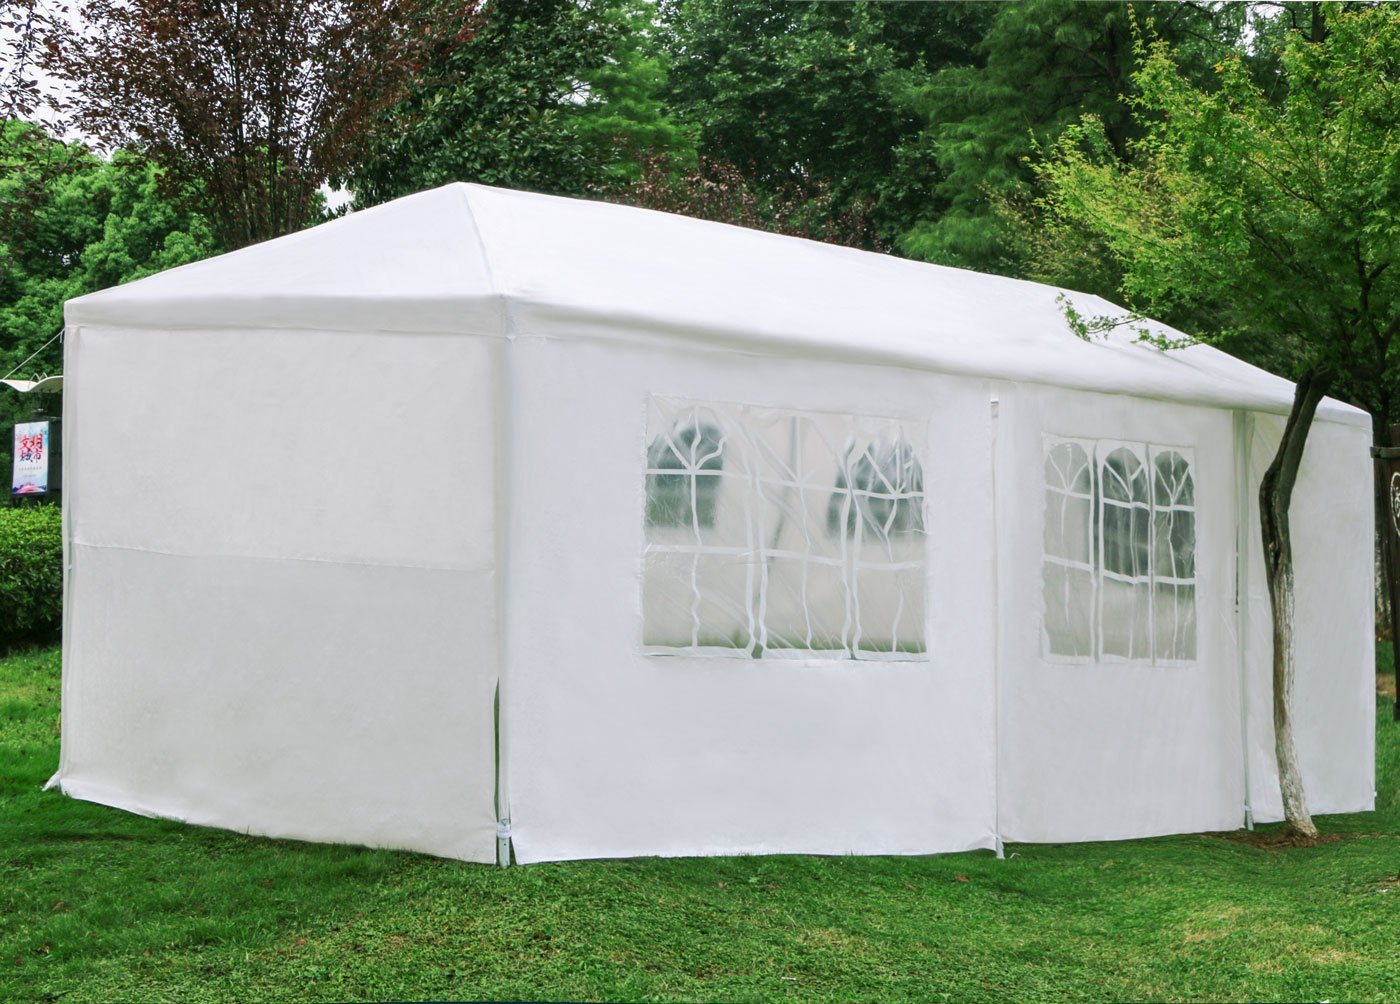 Woworld Outdoor Canopy Tent 10ftx30ft Carport Sidewalls Windows Wedding Party Tent White(10x30)